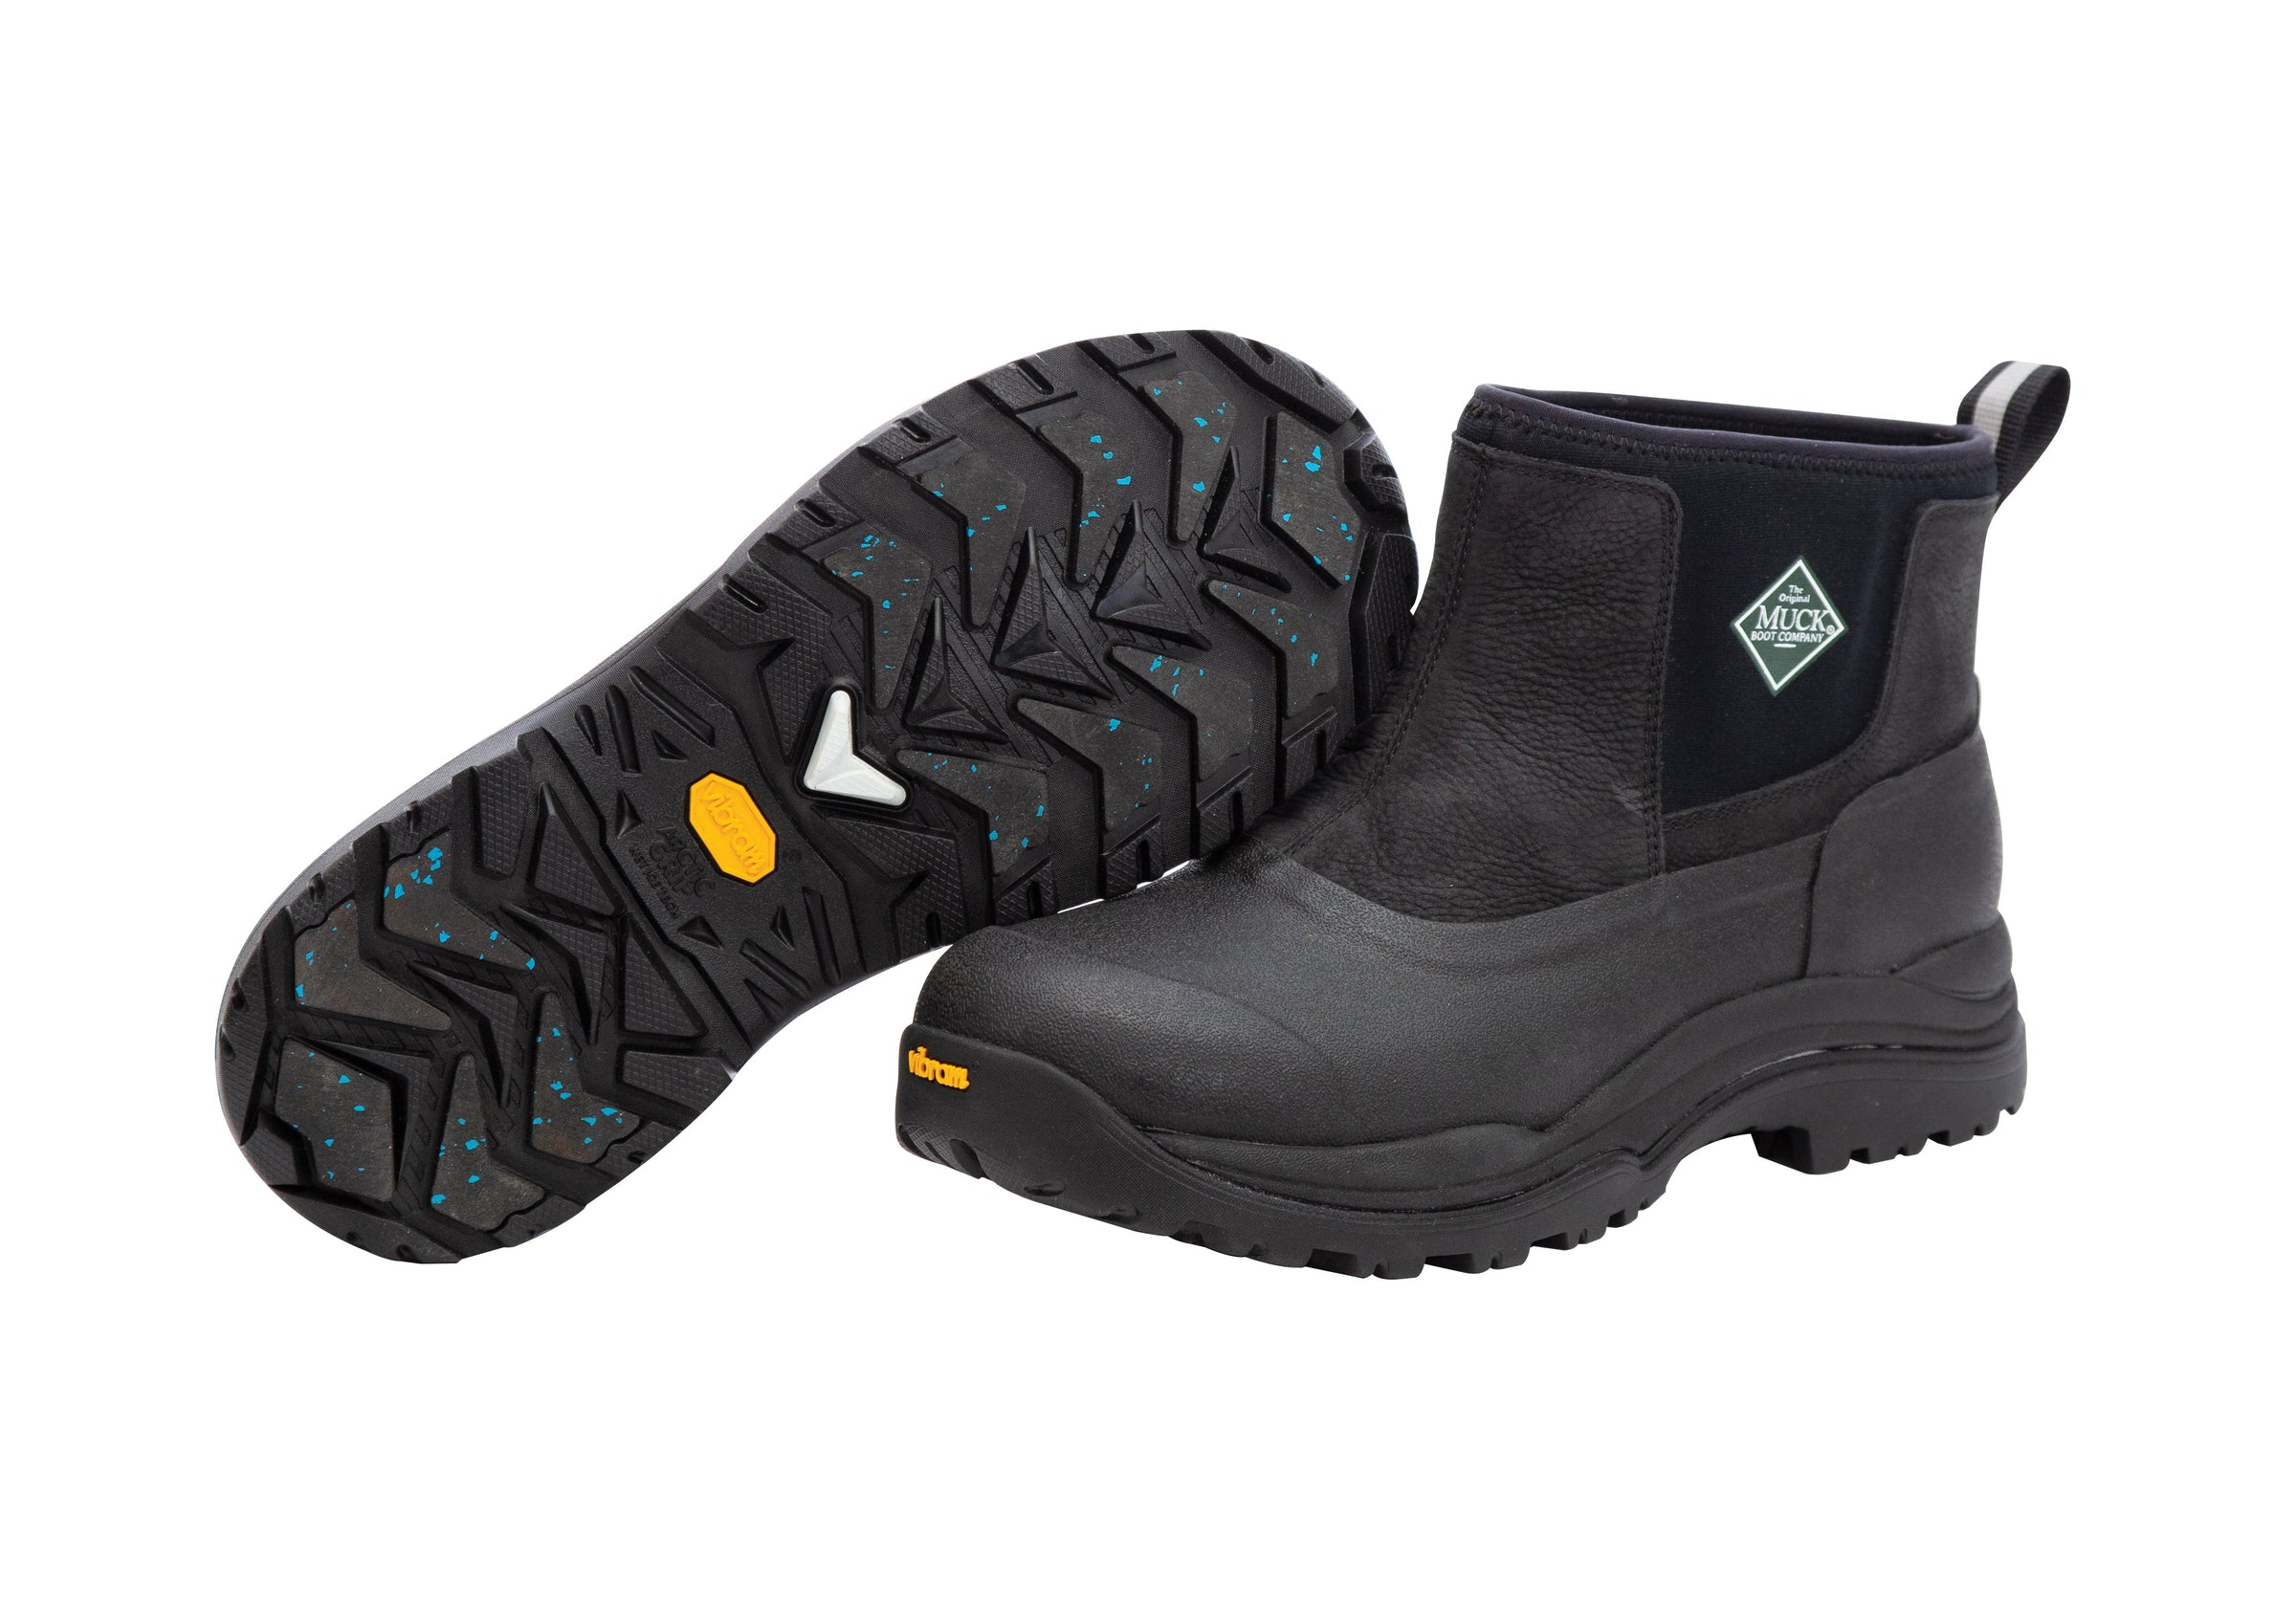 Muck Boots MEN'S ARCTIC OUTPOST PULL ON WITH ARCTIC GRIP